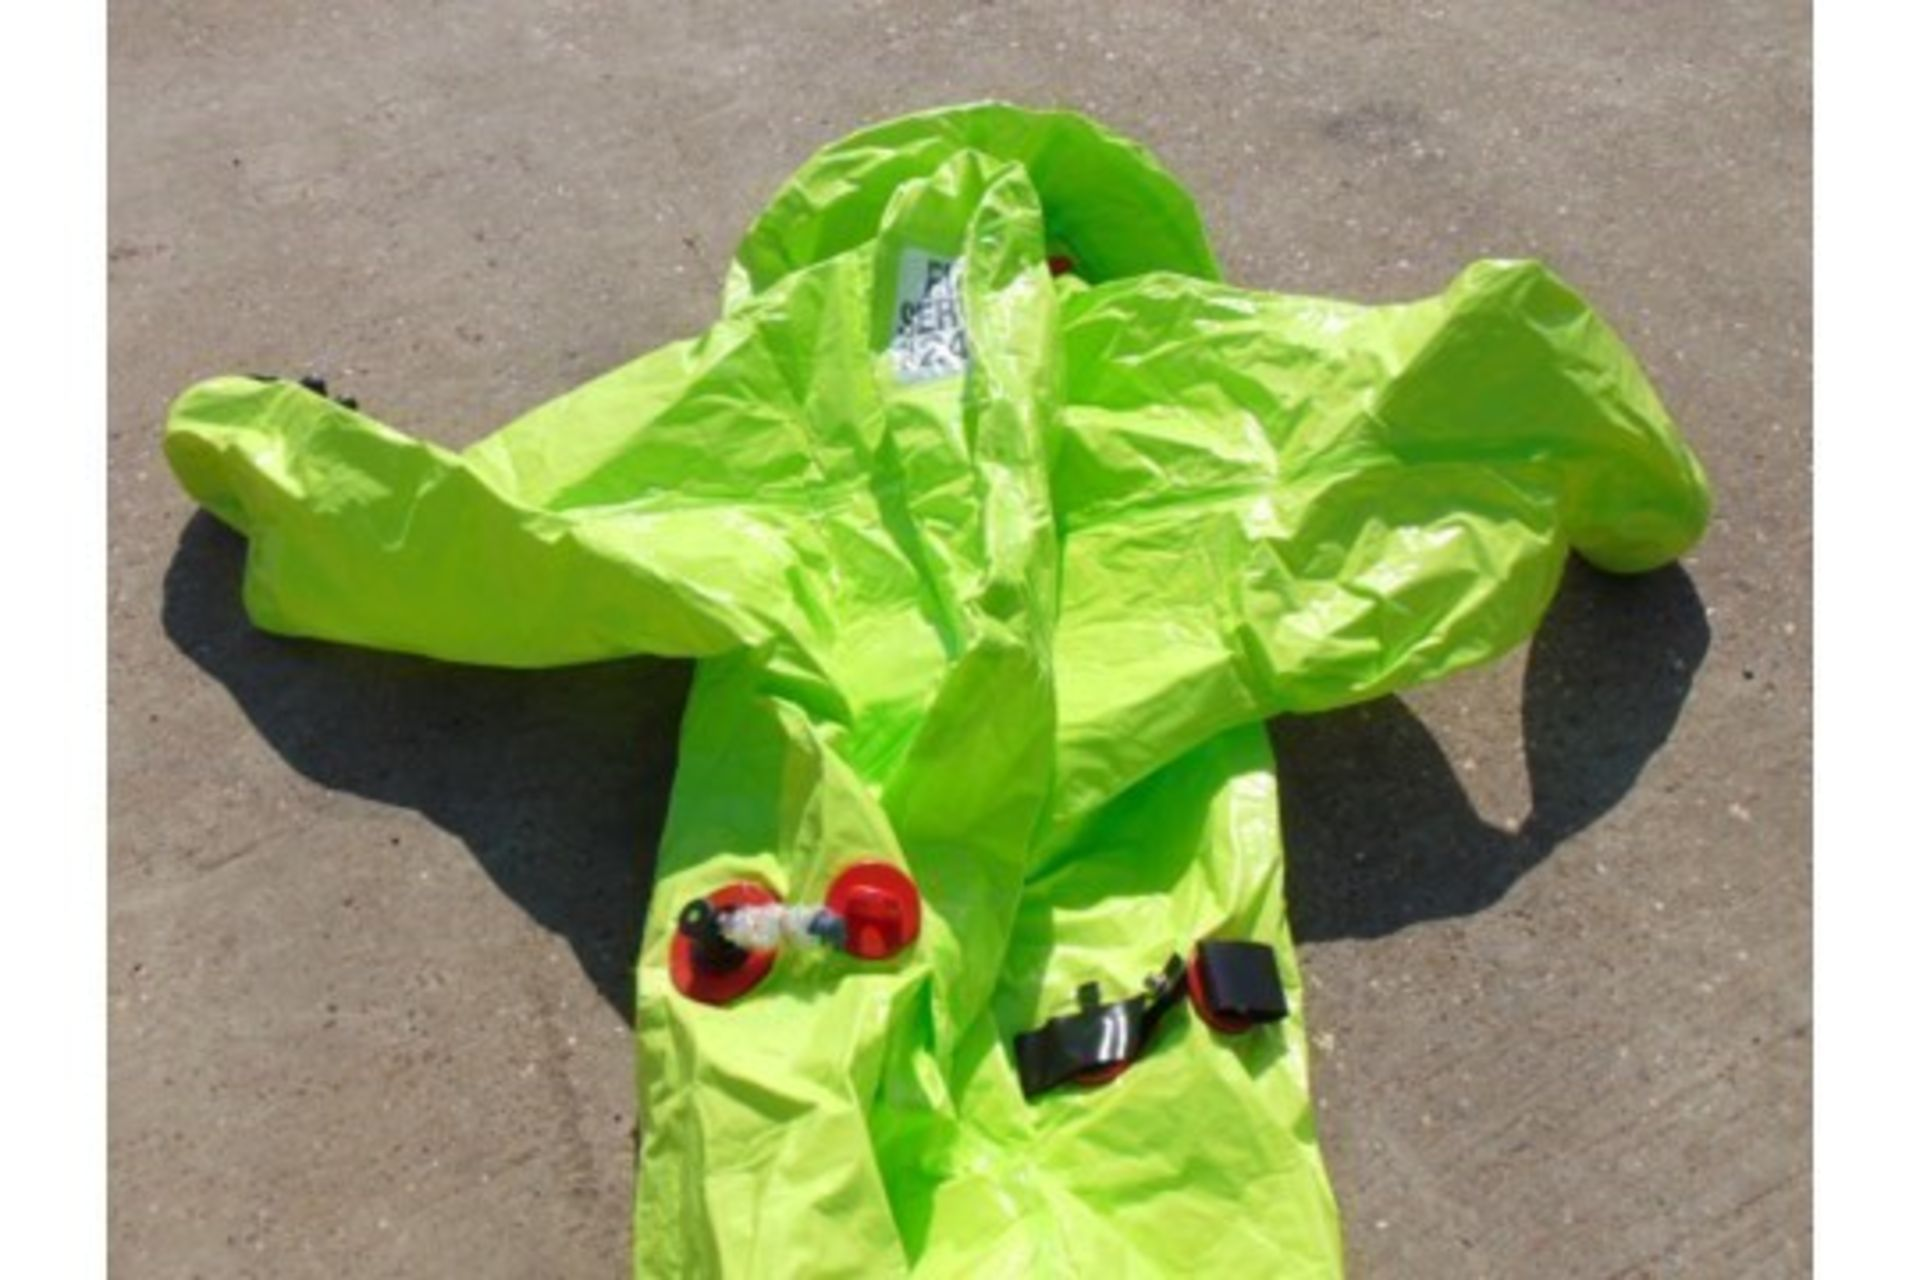 Lotto 26405 - Q10 x Unissued Respirex Tychem TK Gas-Tight Hazmat Suit Type 1A with Attached Boots and Gloves